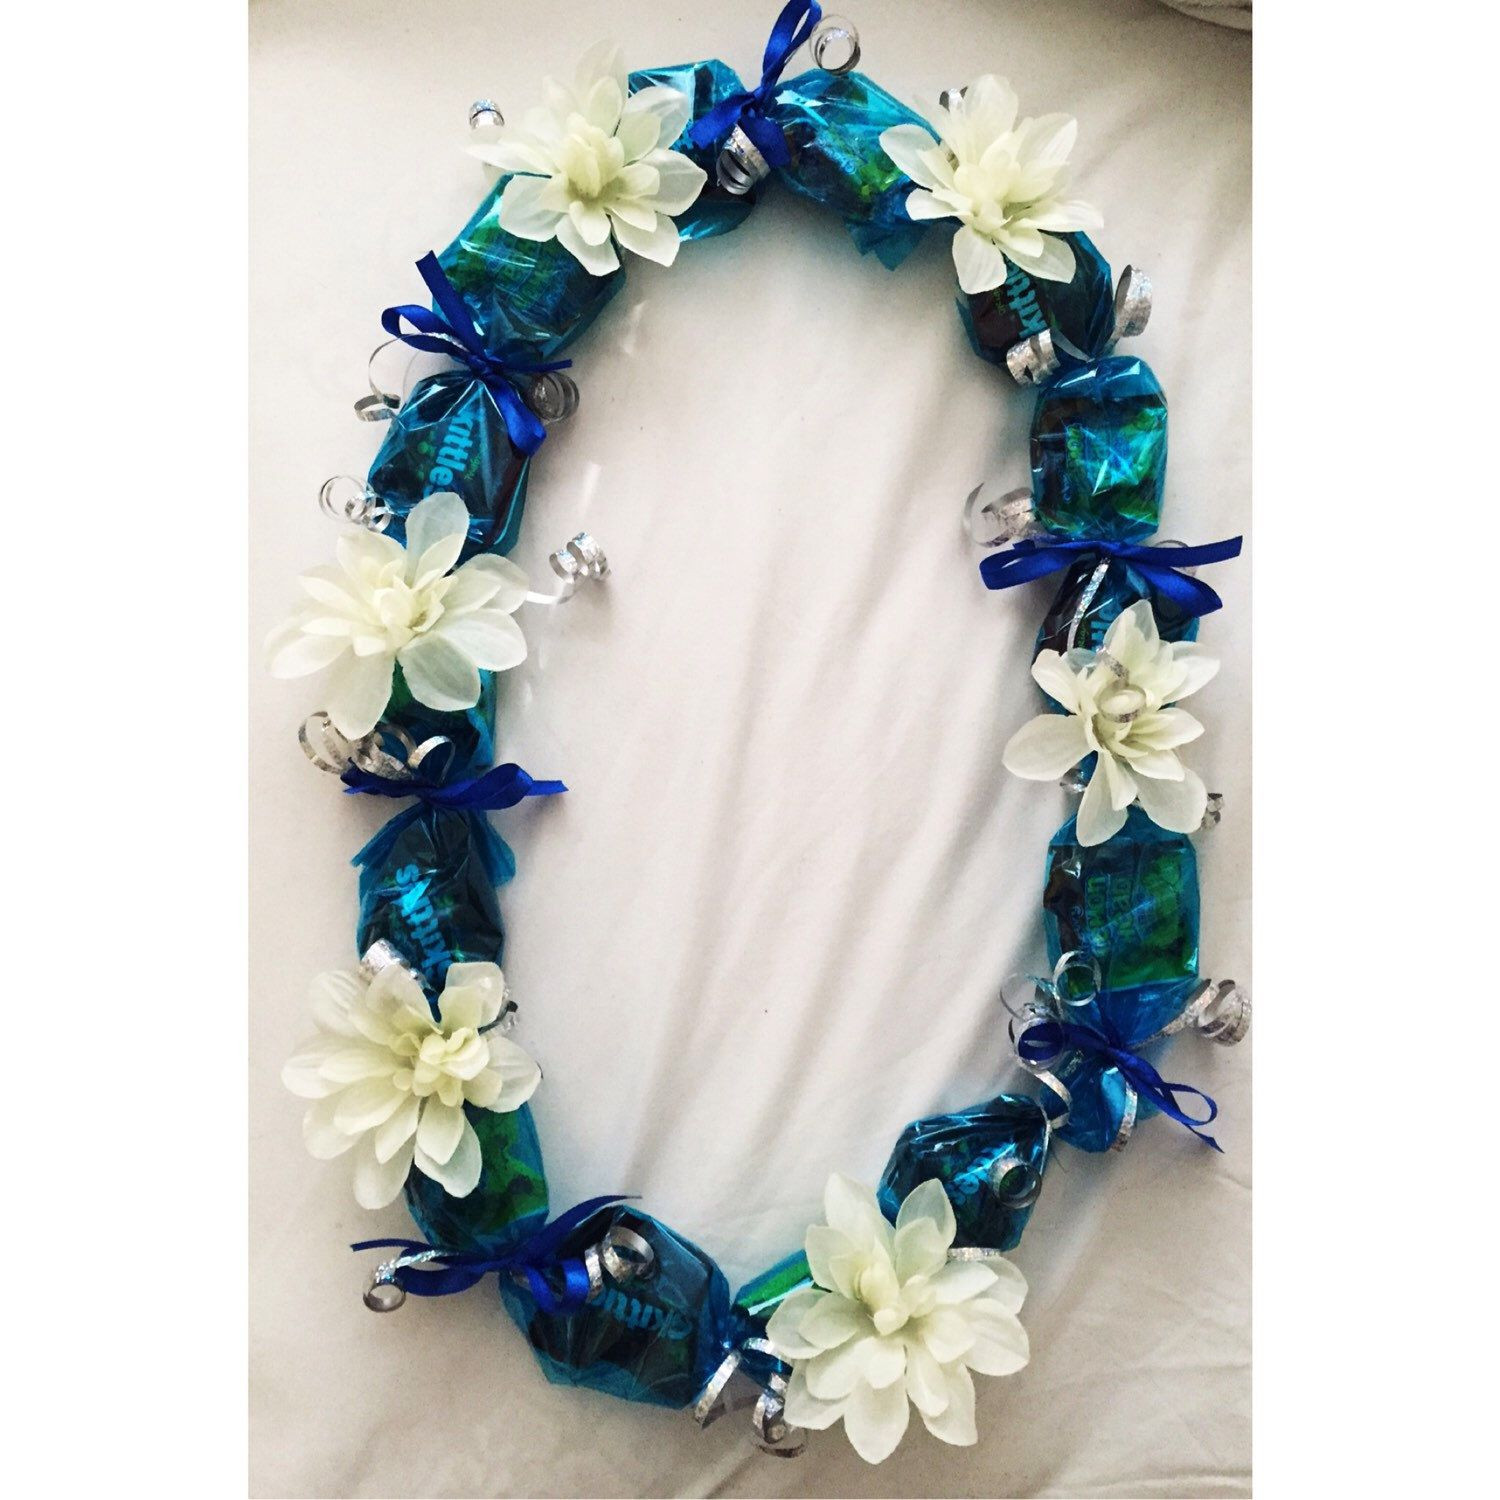 Best ideas about Graduation Leis DIY . Save or Pin Pin by Melissa Dodds on Fantastic ideas Now.